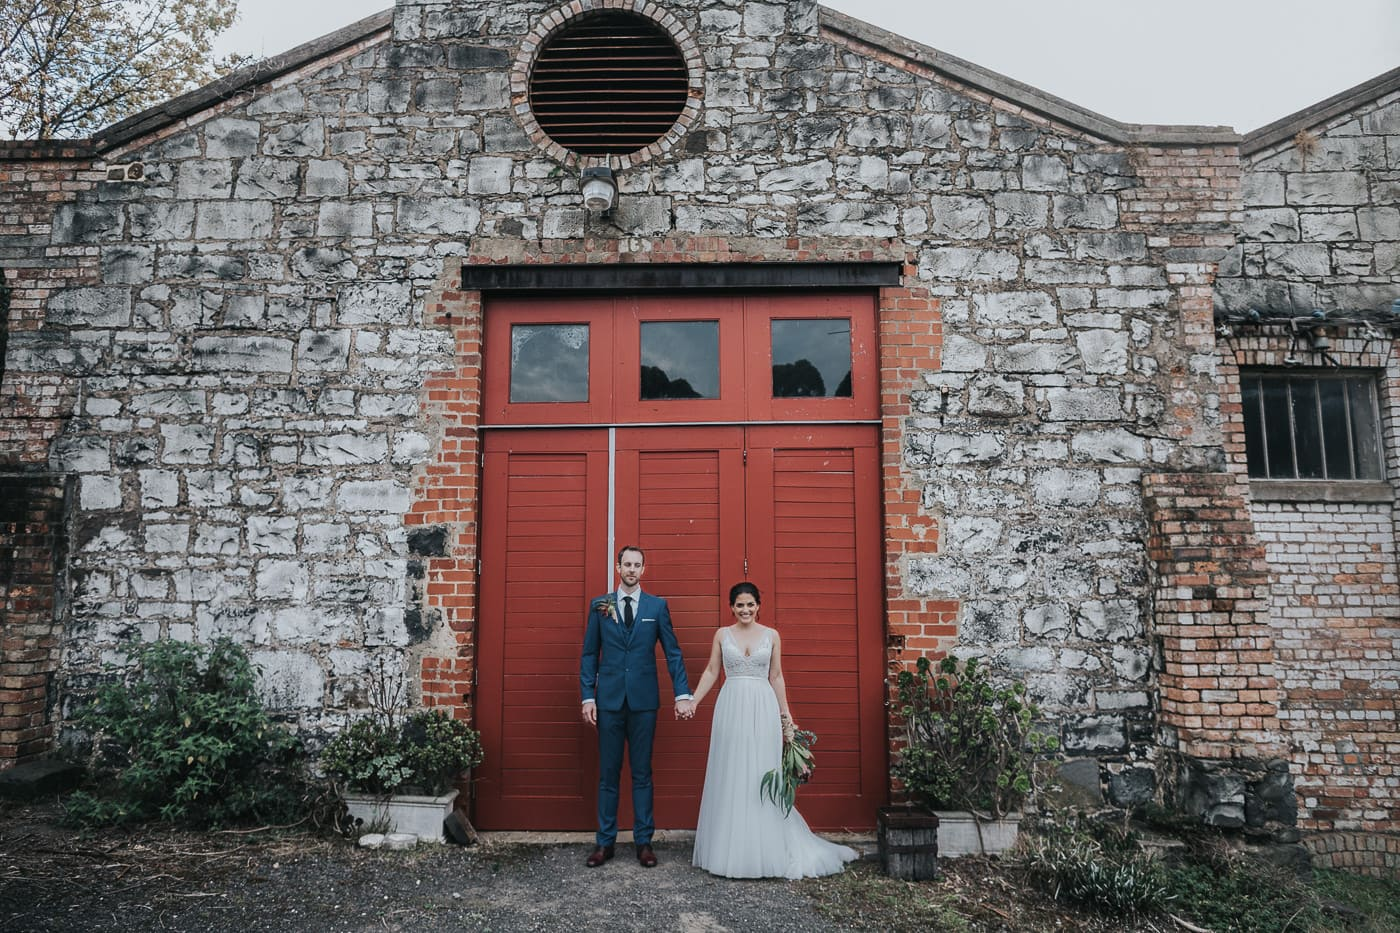 Melbourne Wedding Photography Locations